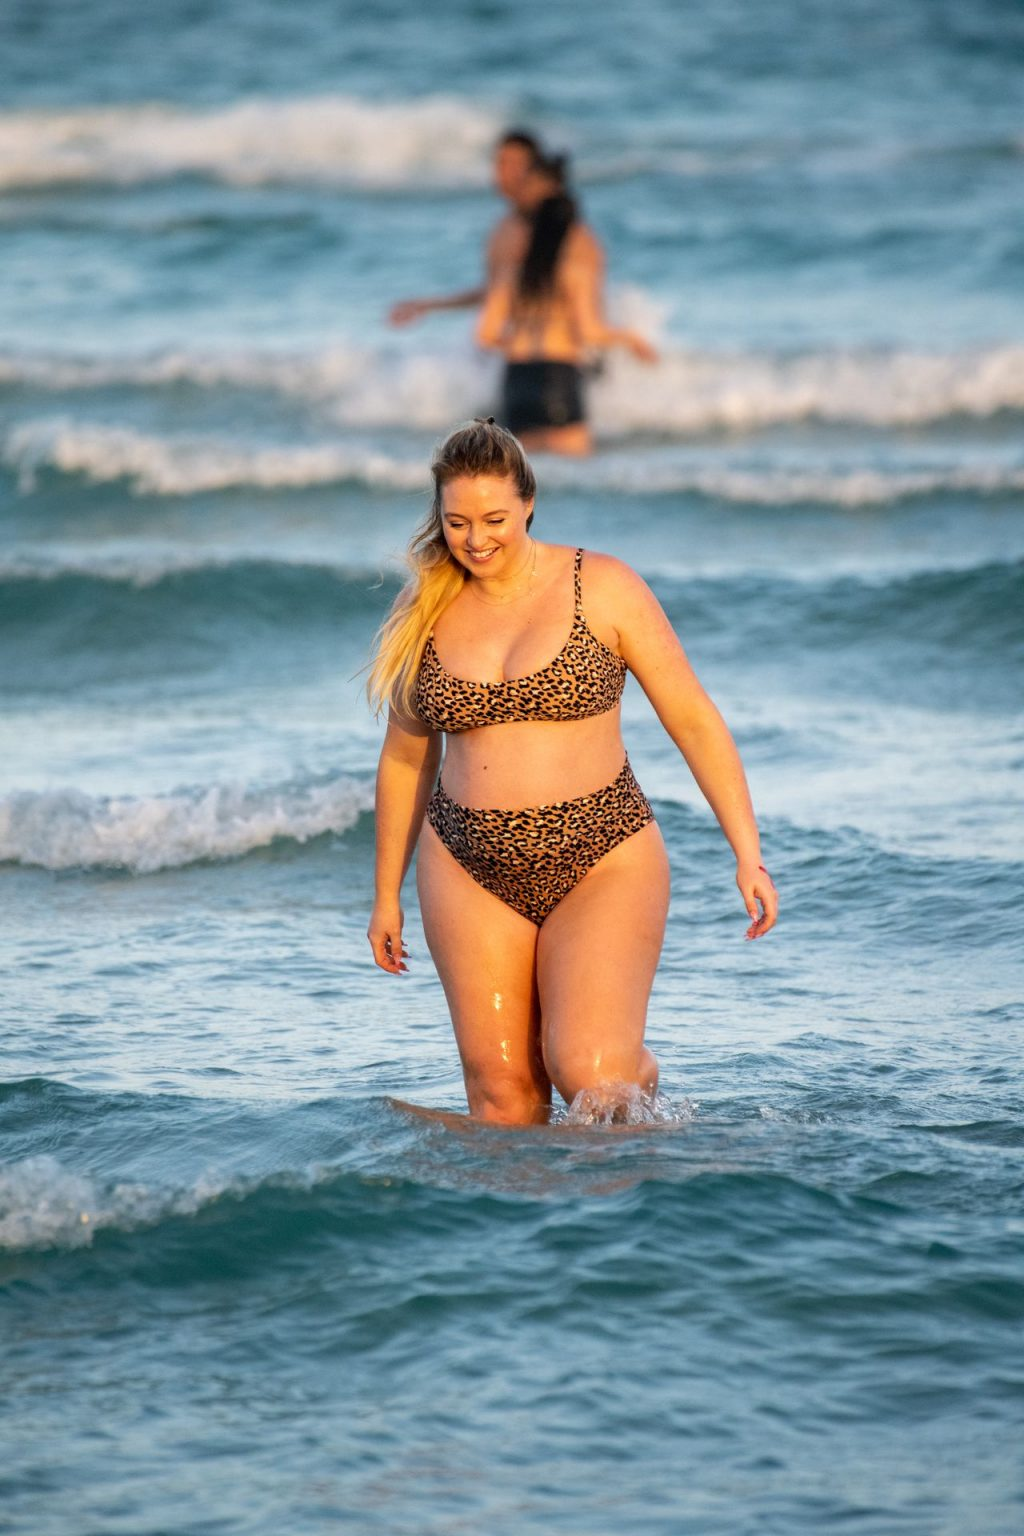 Iskra Lawrence Sexy The Fappening Blog 16 1024x1536 - Heavily Pregnant Model Iskra Lawrence Takes A Sunset Dip In Miami Beach (44 Photos)